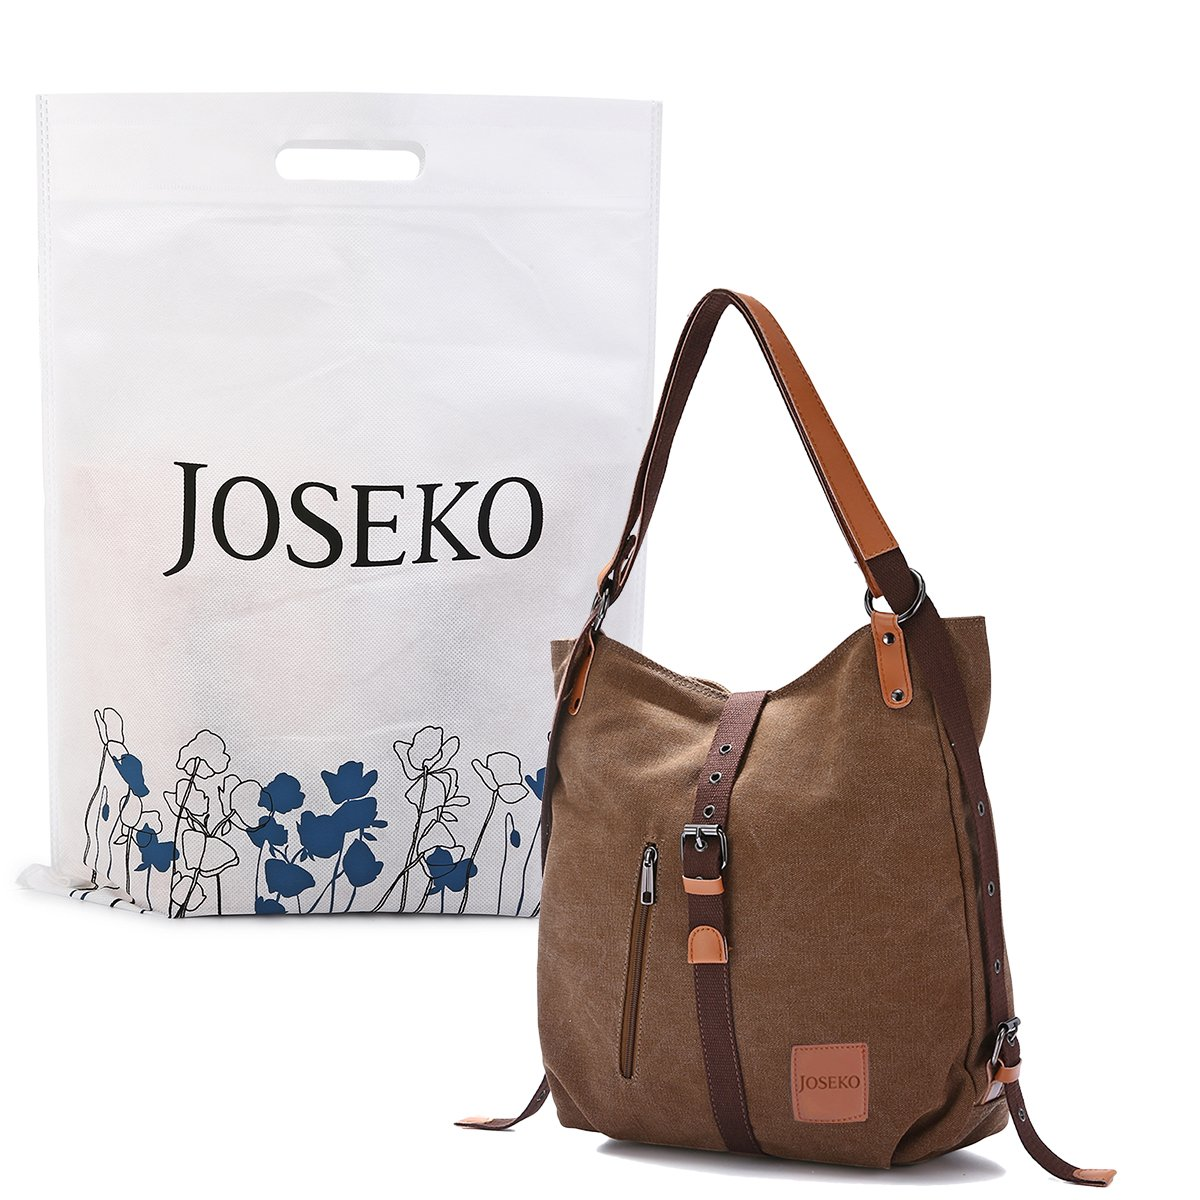 JOSEKO Fashion Shoulder Bag Rucksack, Canvas Multifunctional Casual Handbag Travel Backpack for Women Girls Ladies, Large Capacity Coffee 14.17 inch(L) x 3.94 inch(W) x 14.96 inch(H) by JOSEKO